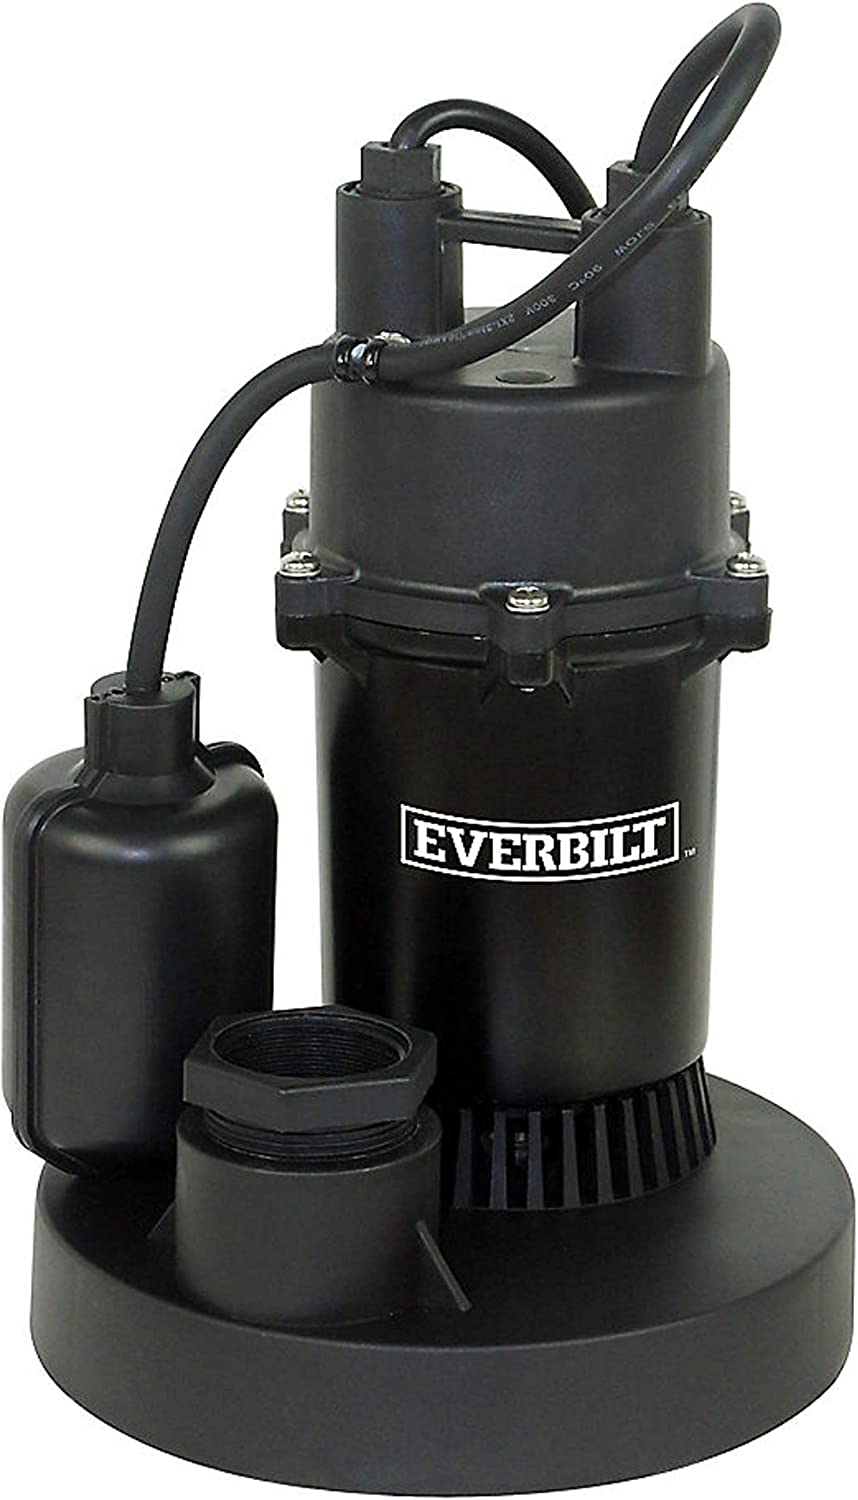 Everbilt 1/3 HP Aluminum Submersible Sump Pump with Tether